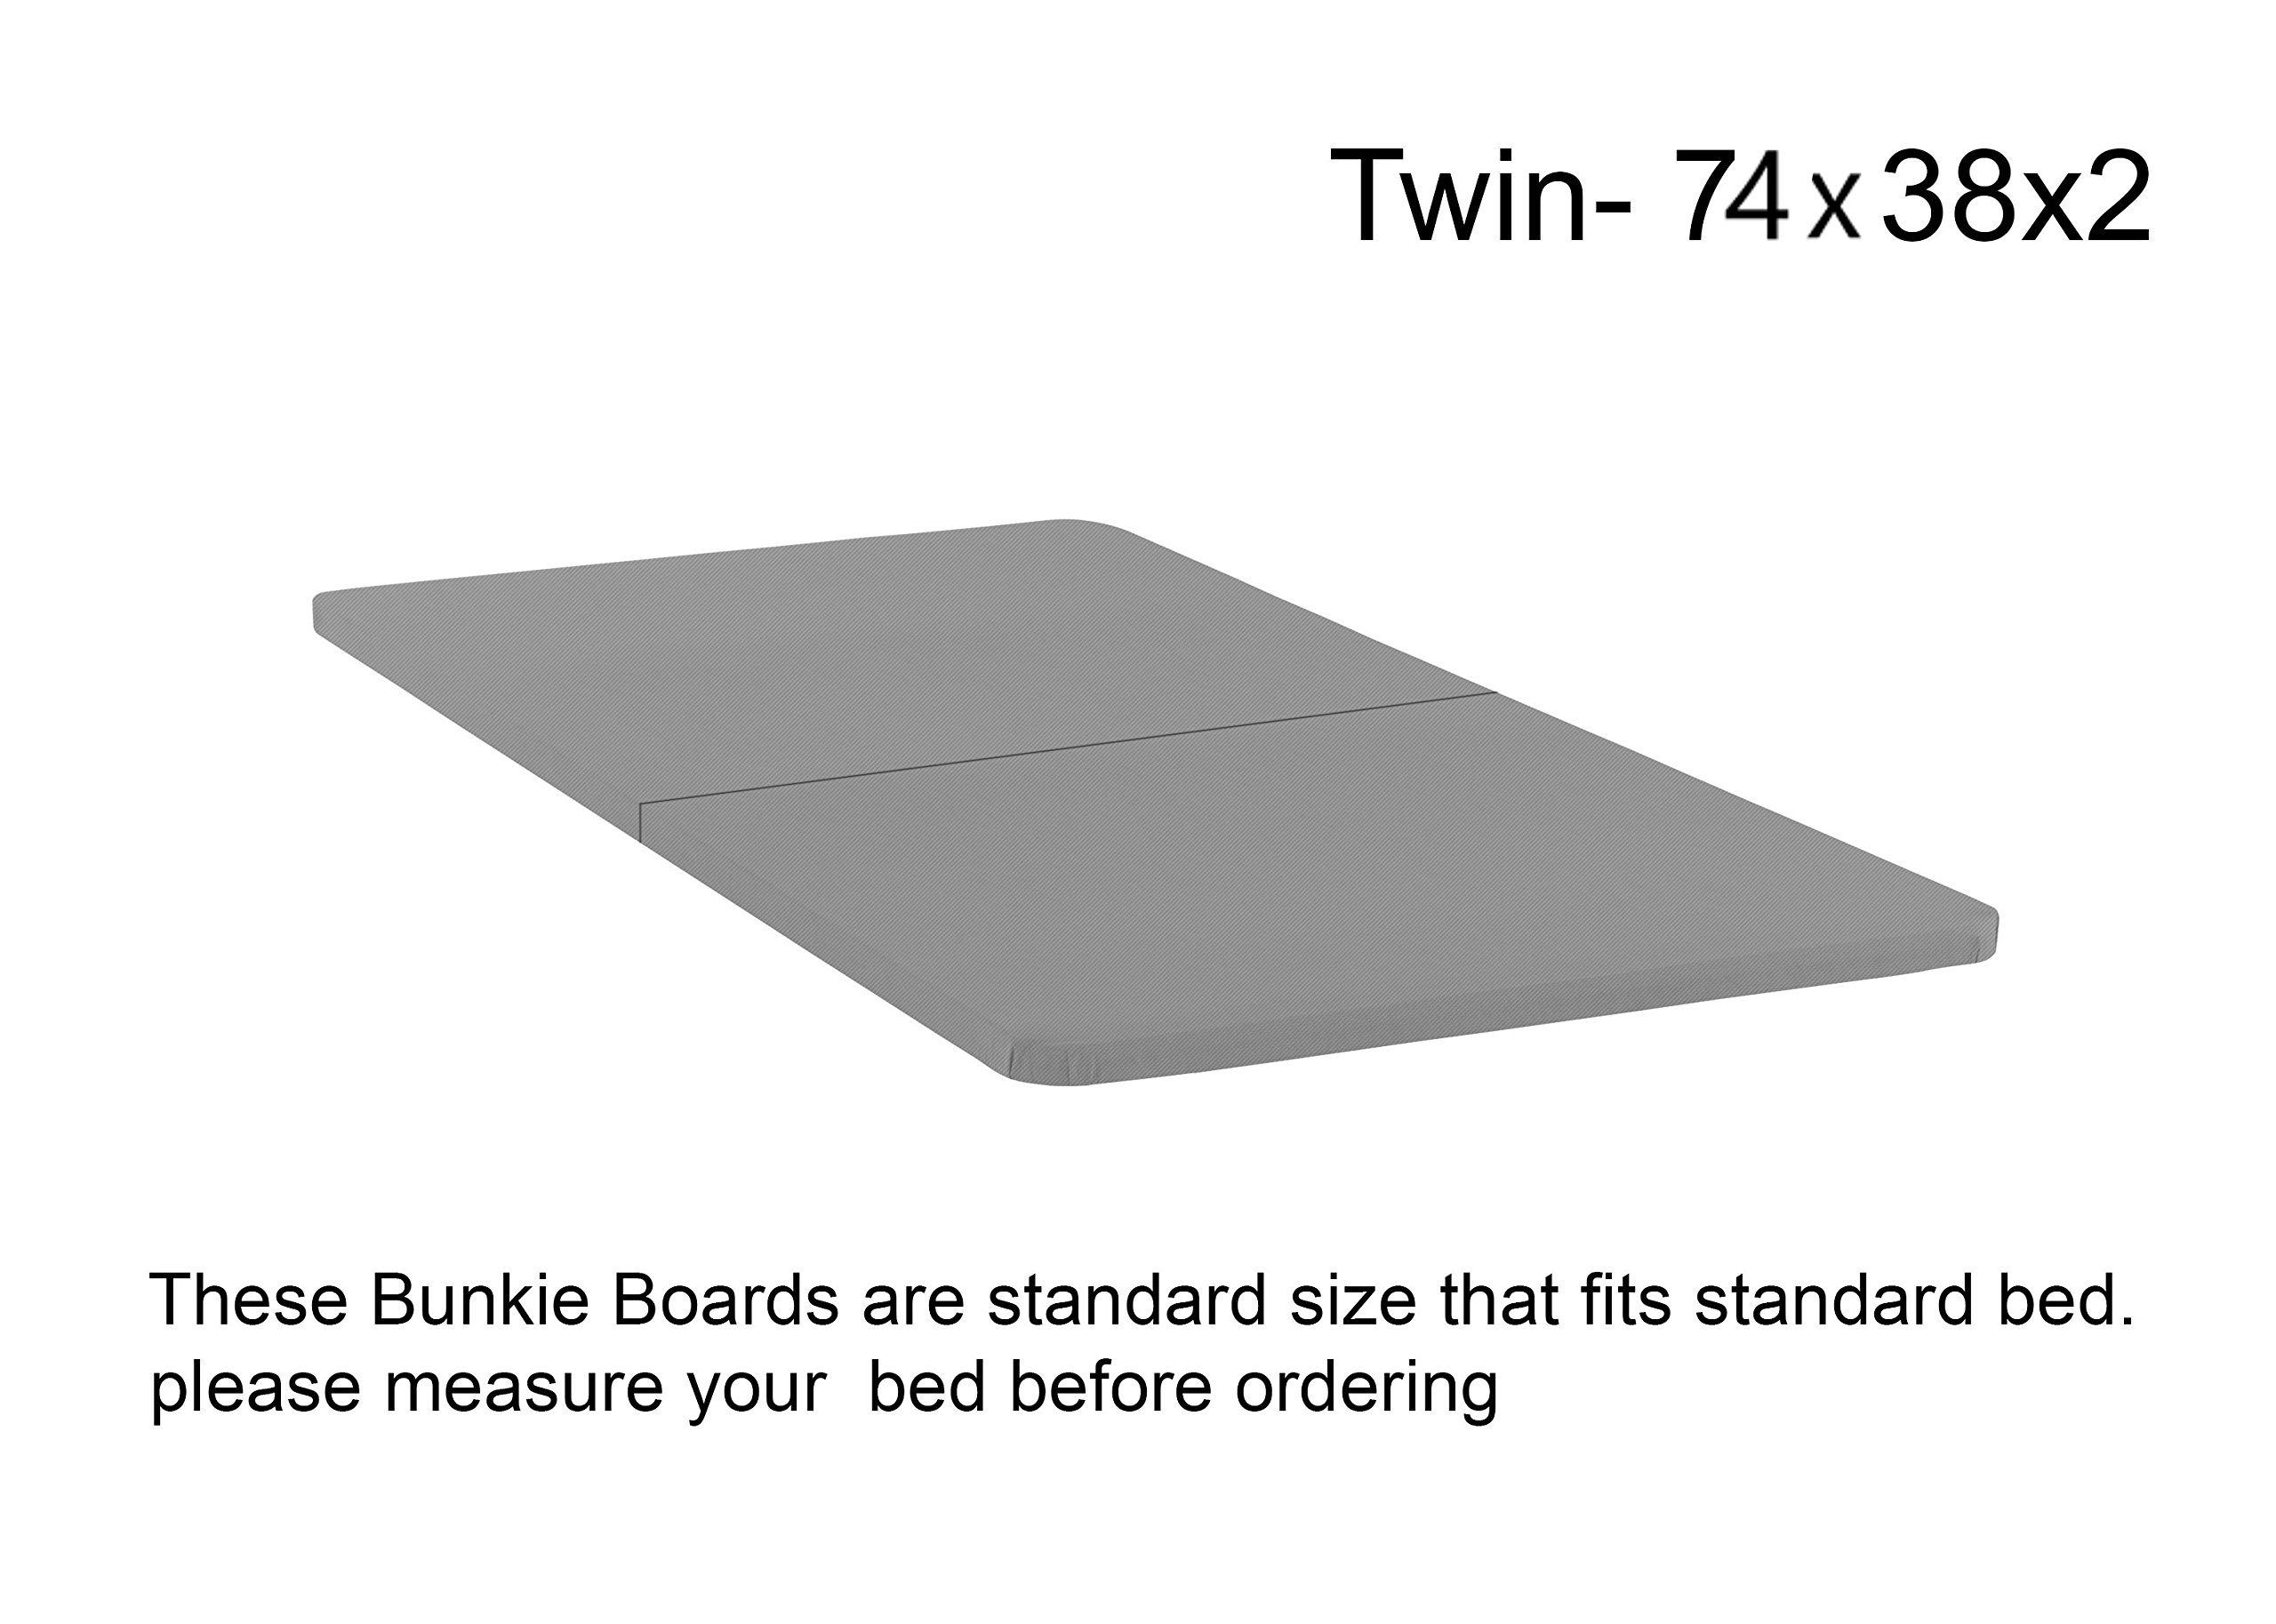 Spinal Solution BByy-3/3s Foundation/Bunkie Board, Mattress Support Twin Size